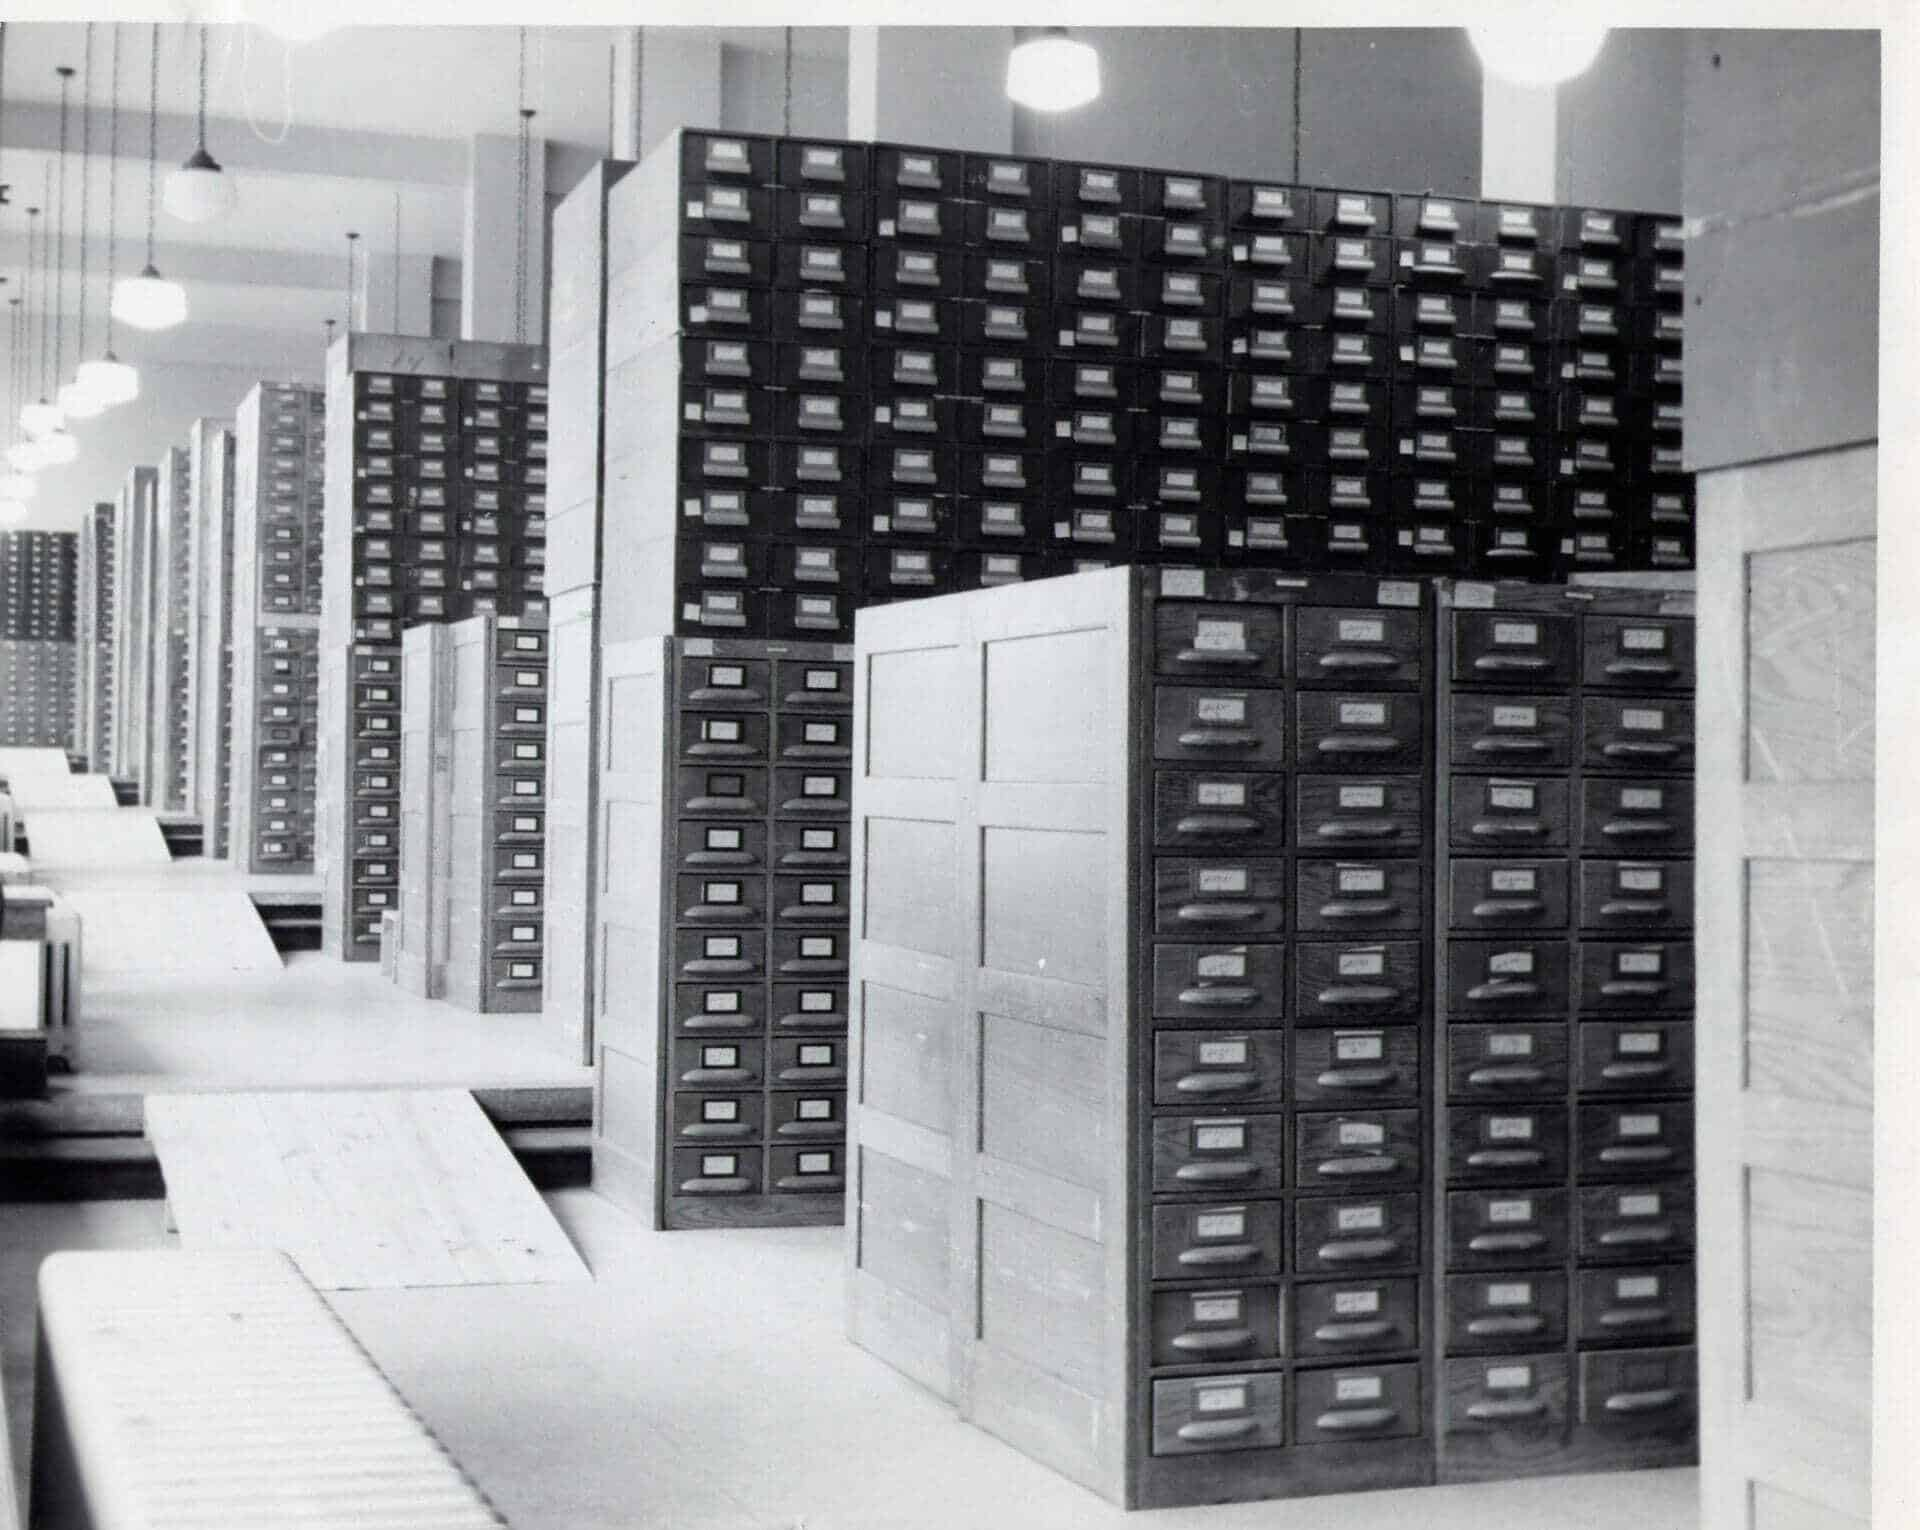 black and white vintage photograph of file cabinets